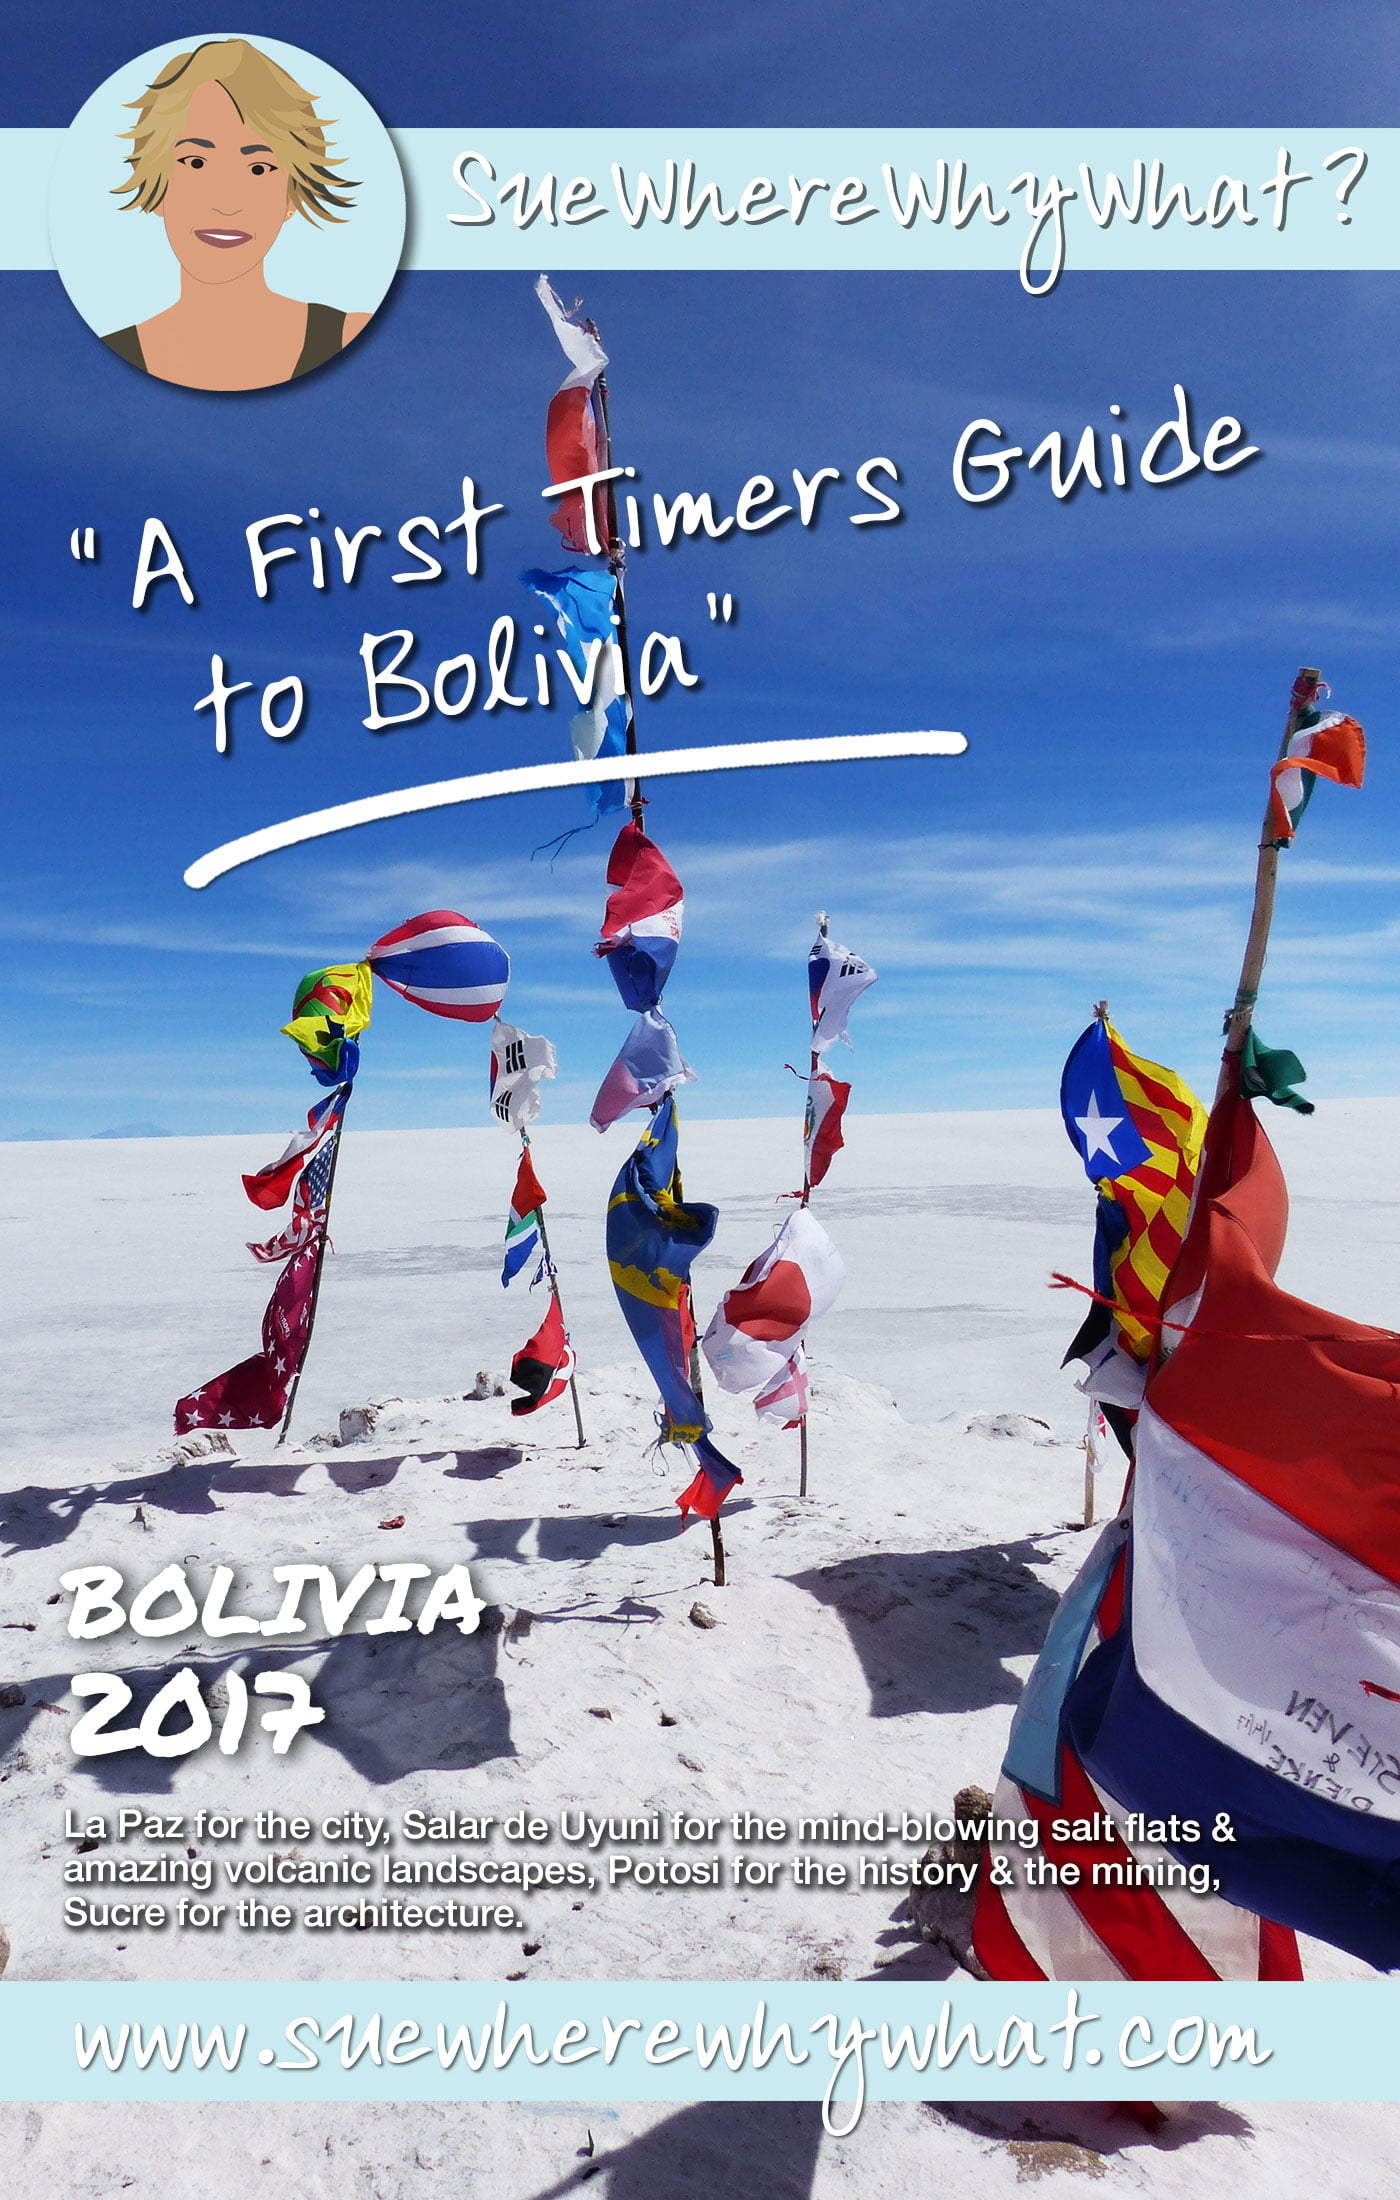 A First Timer\'s Guide to Bolivia. Includes advice on Money, Transport, how to deal with the Altitude, Shopping, Healthcare, Traditions & all the Basics you need to know for a First Time Visit. Also where to stay, eat & drink in La Paz, Potosi & Sucre.  https://www.suewherewhywhat.com/countries/bolivia/first-time-in-bolivia